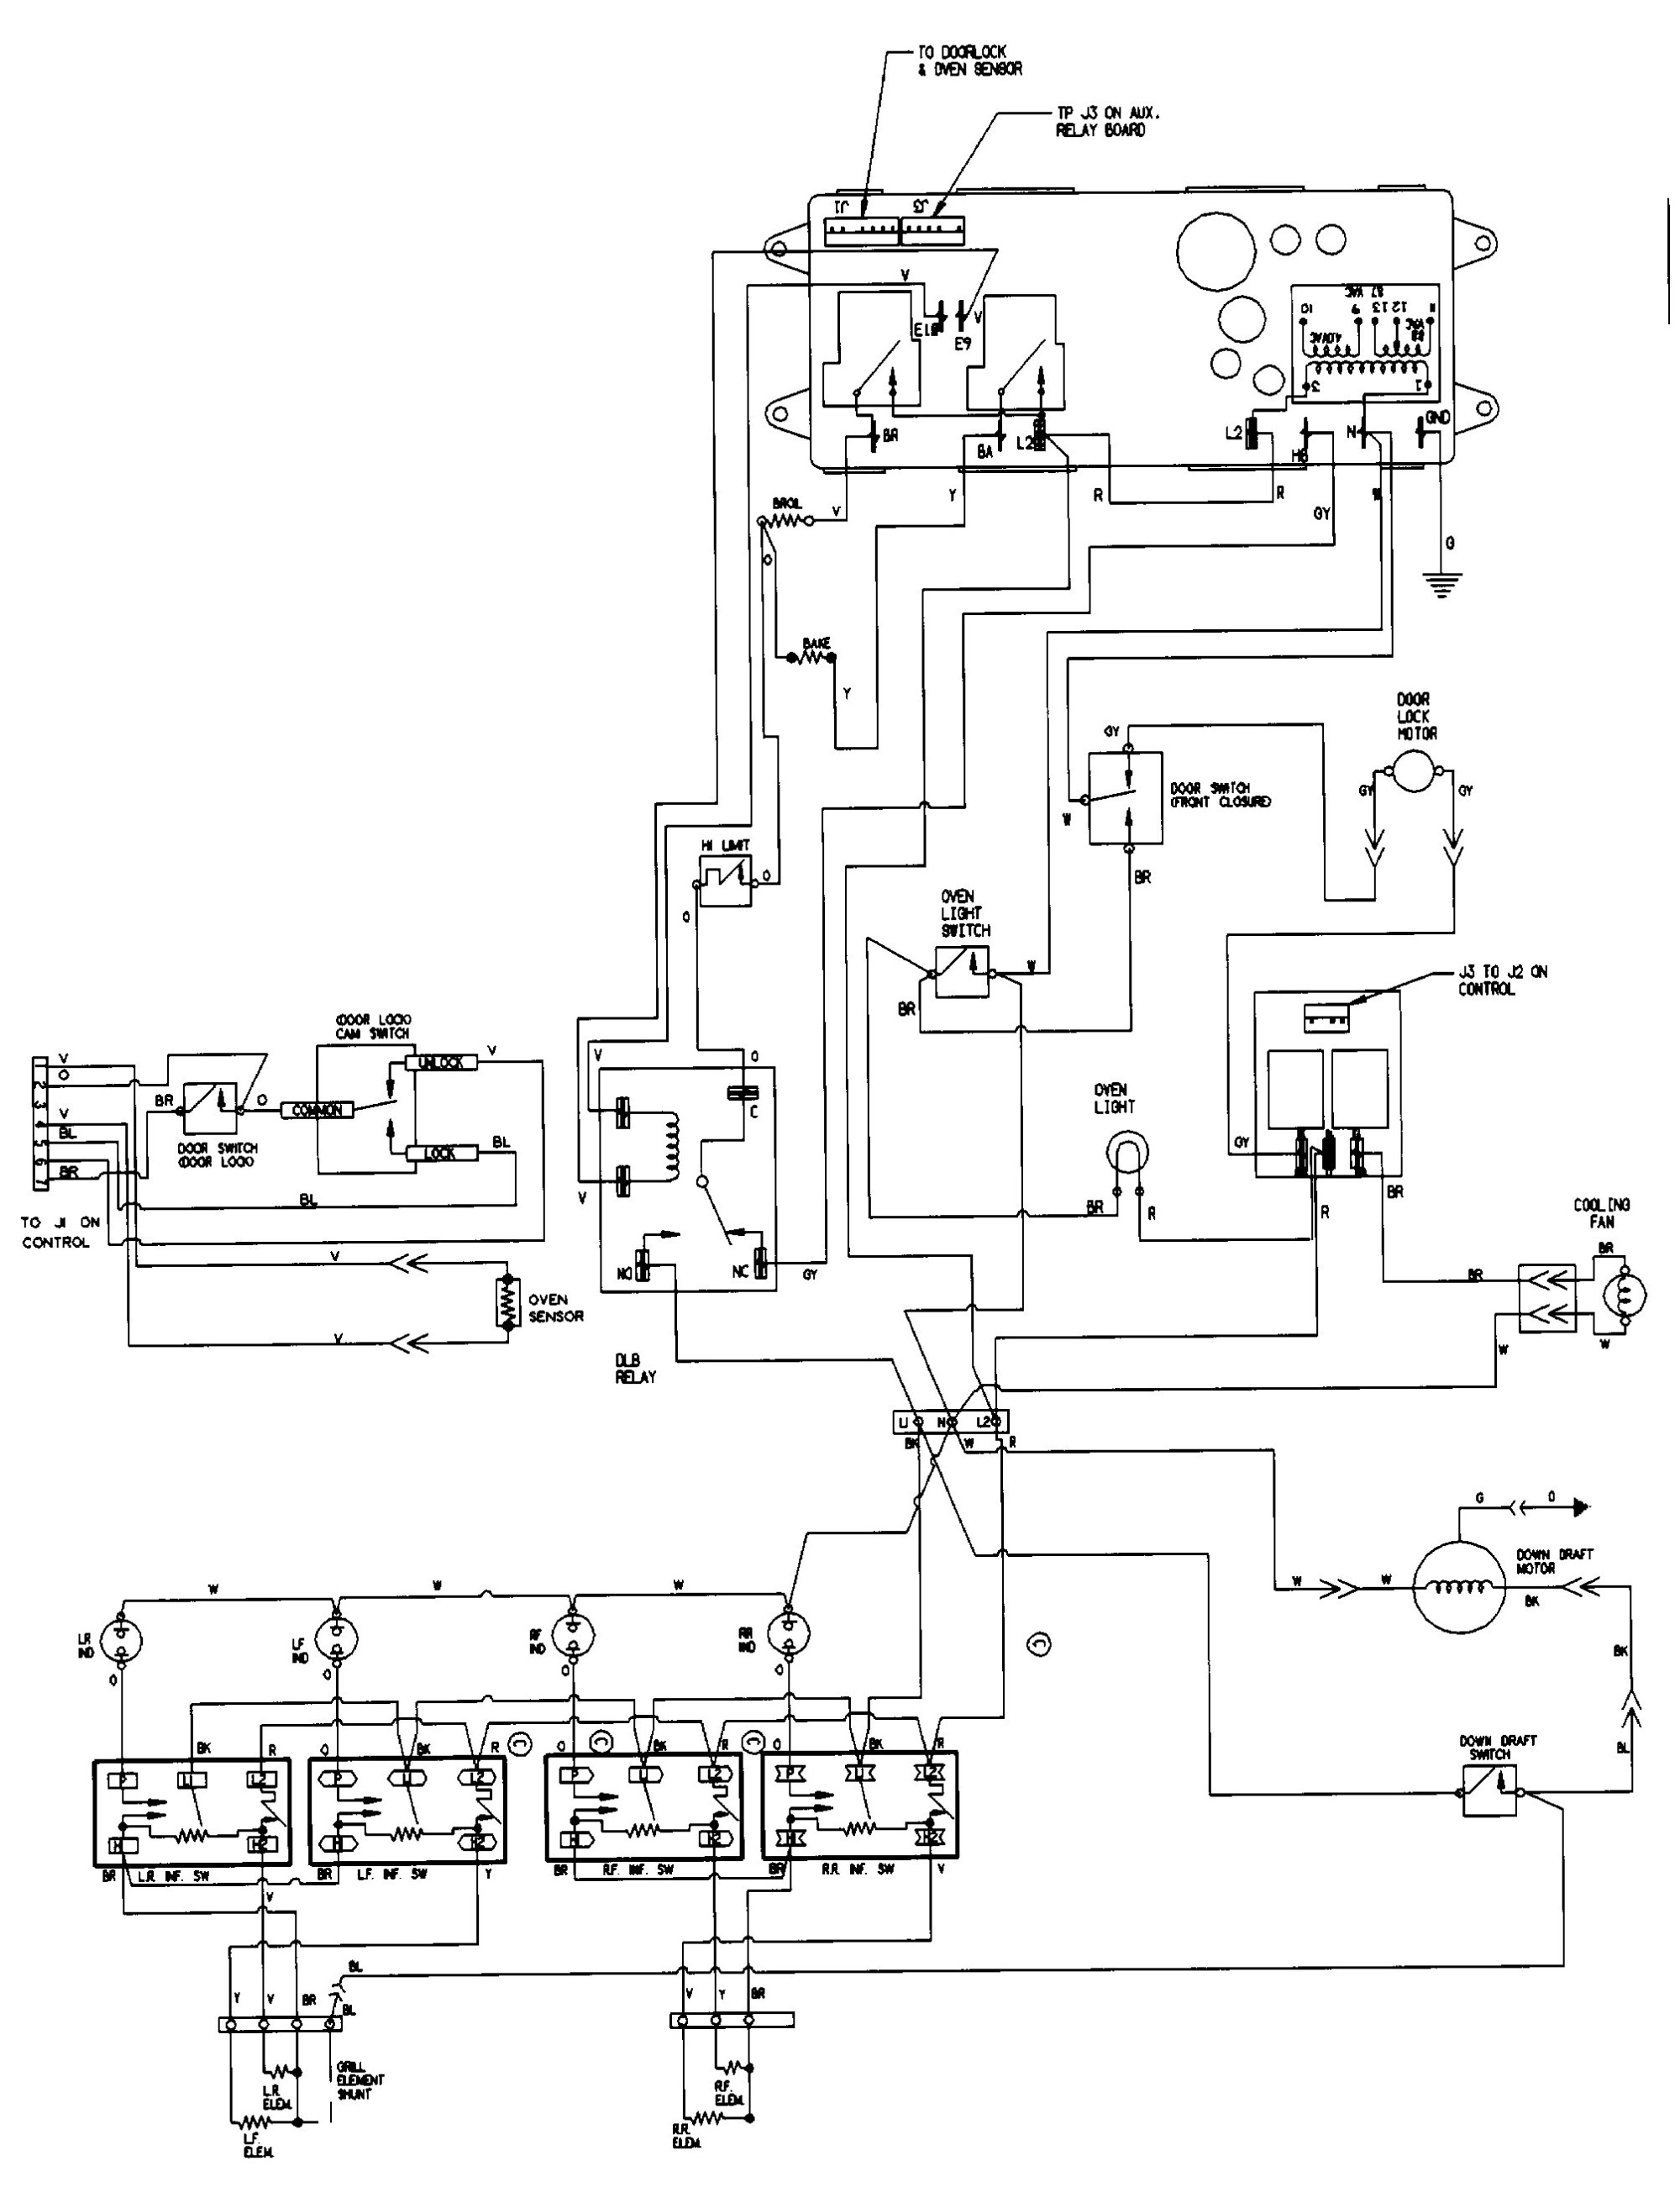 hight resolution of wiring diagram mitsubishi montero xls schematics wiring diagrams u2022 rh mrskinnytie com infiniti